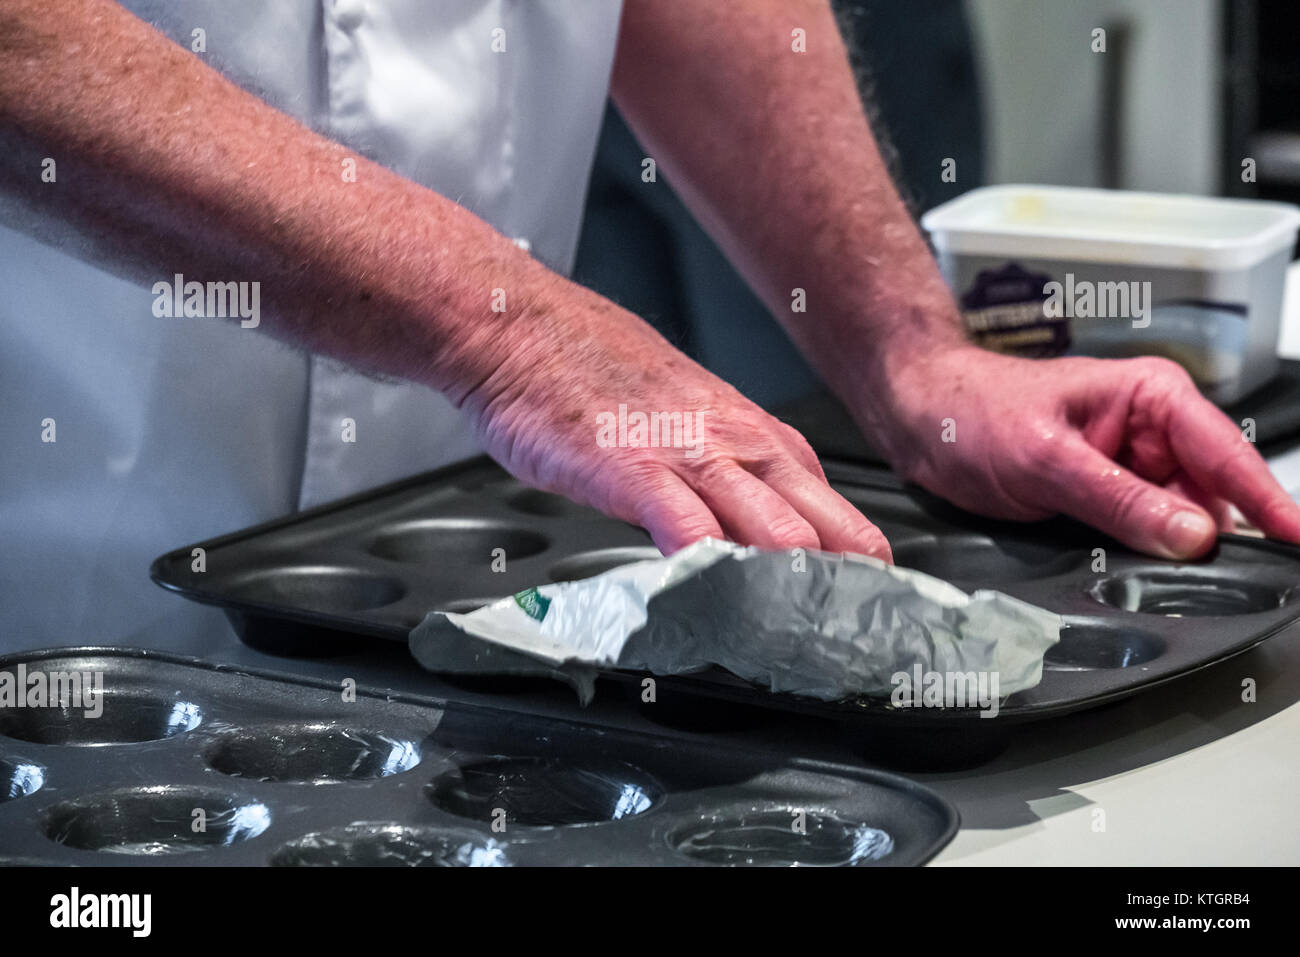 Close up of older man's hands greasing mince pie tins in a kitchen in preparation for making mince pies Stock Photo